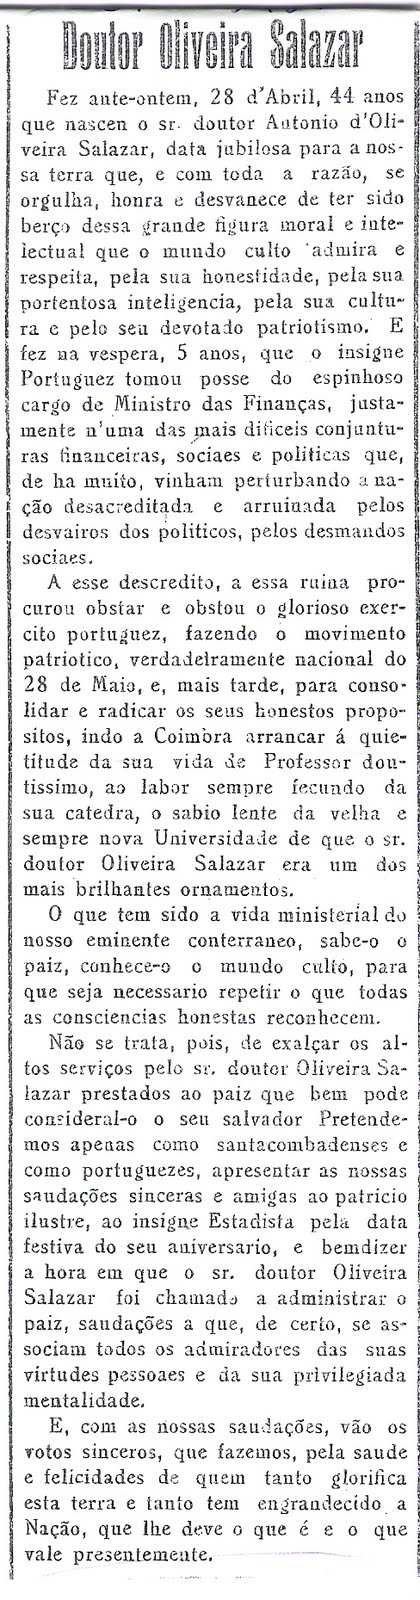 Noticia de 30 de Abril de 1933